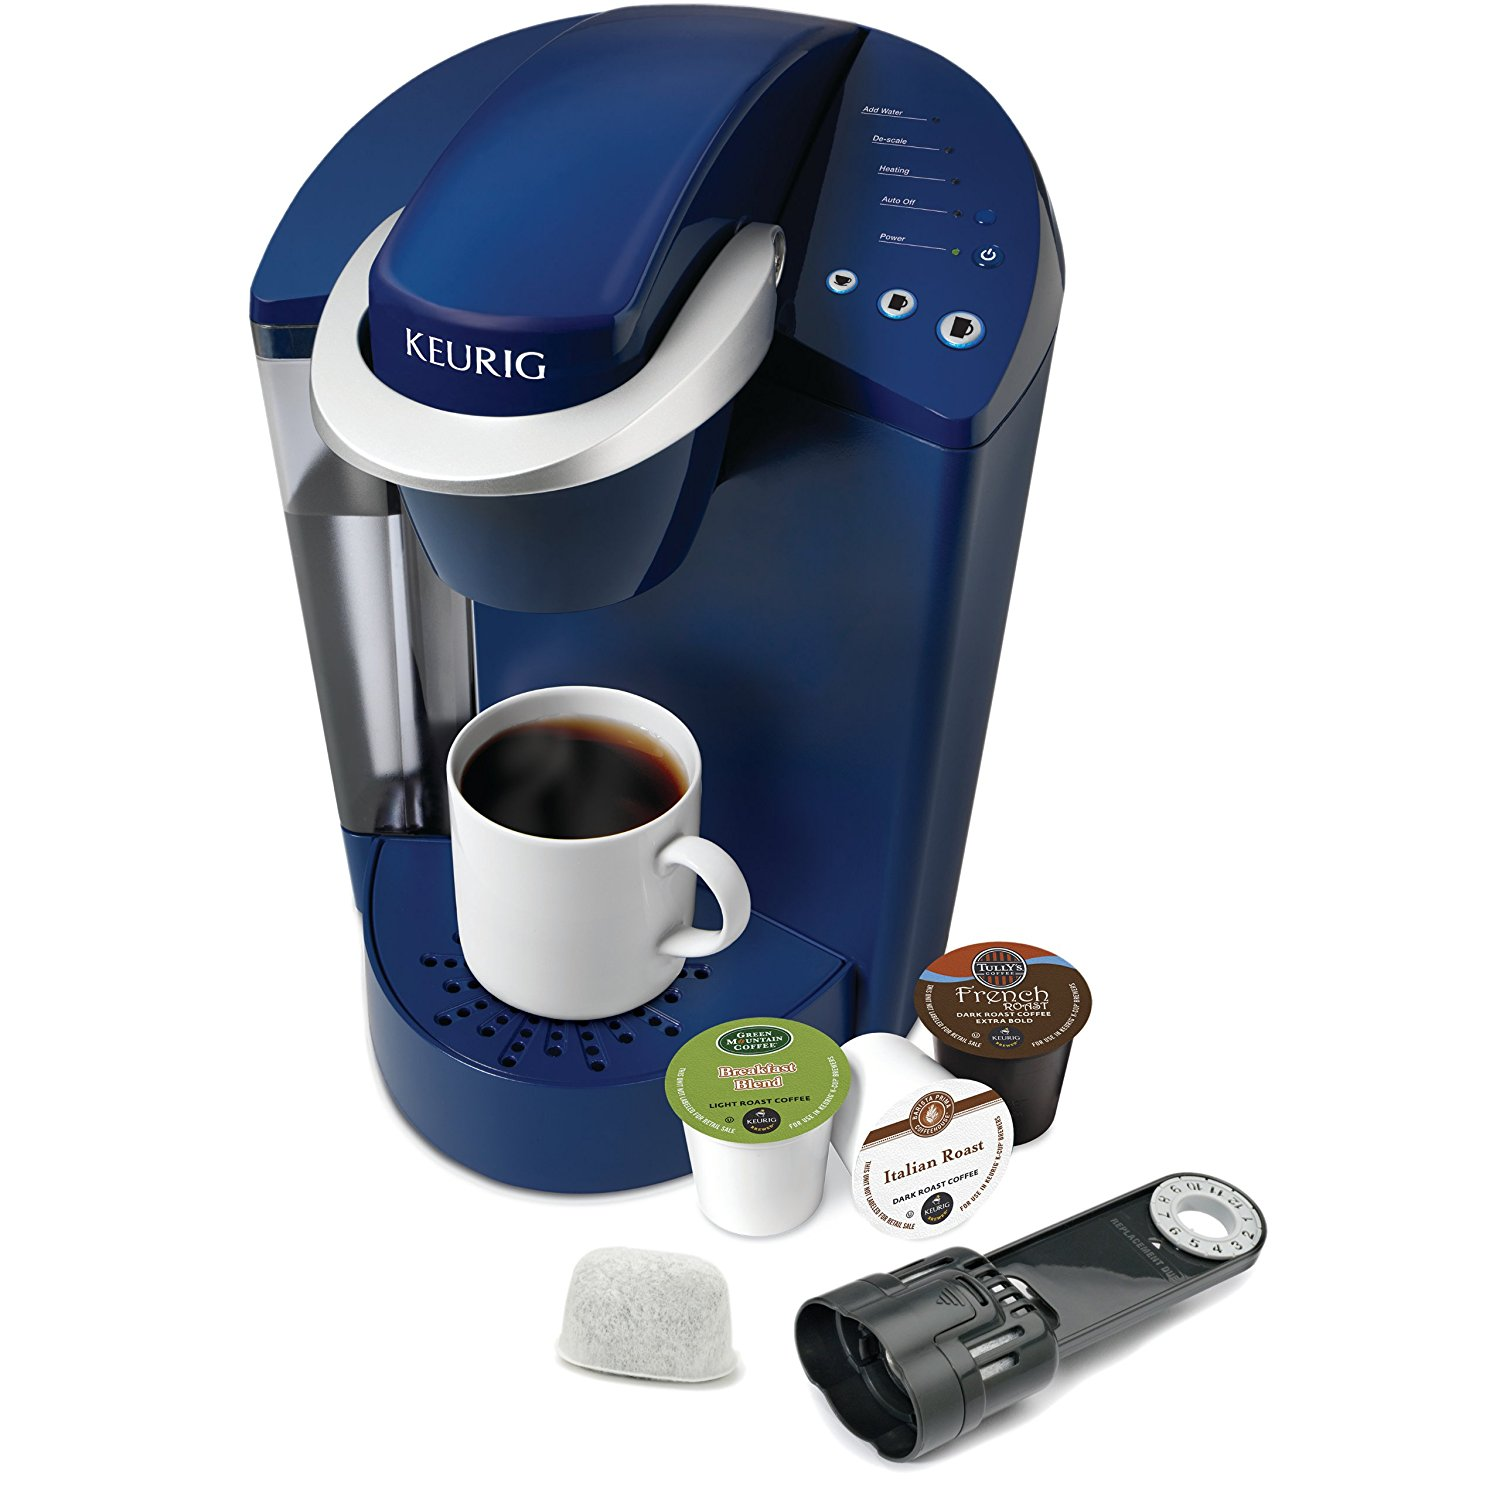 Keurig K55 Single Cup Coffee Brewer with 48 Ounce Water Reservoir – Available in 4 Colors